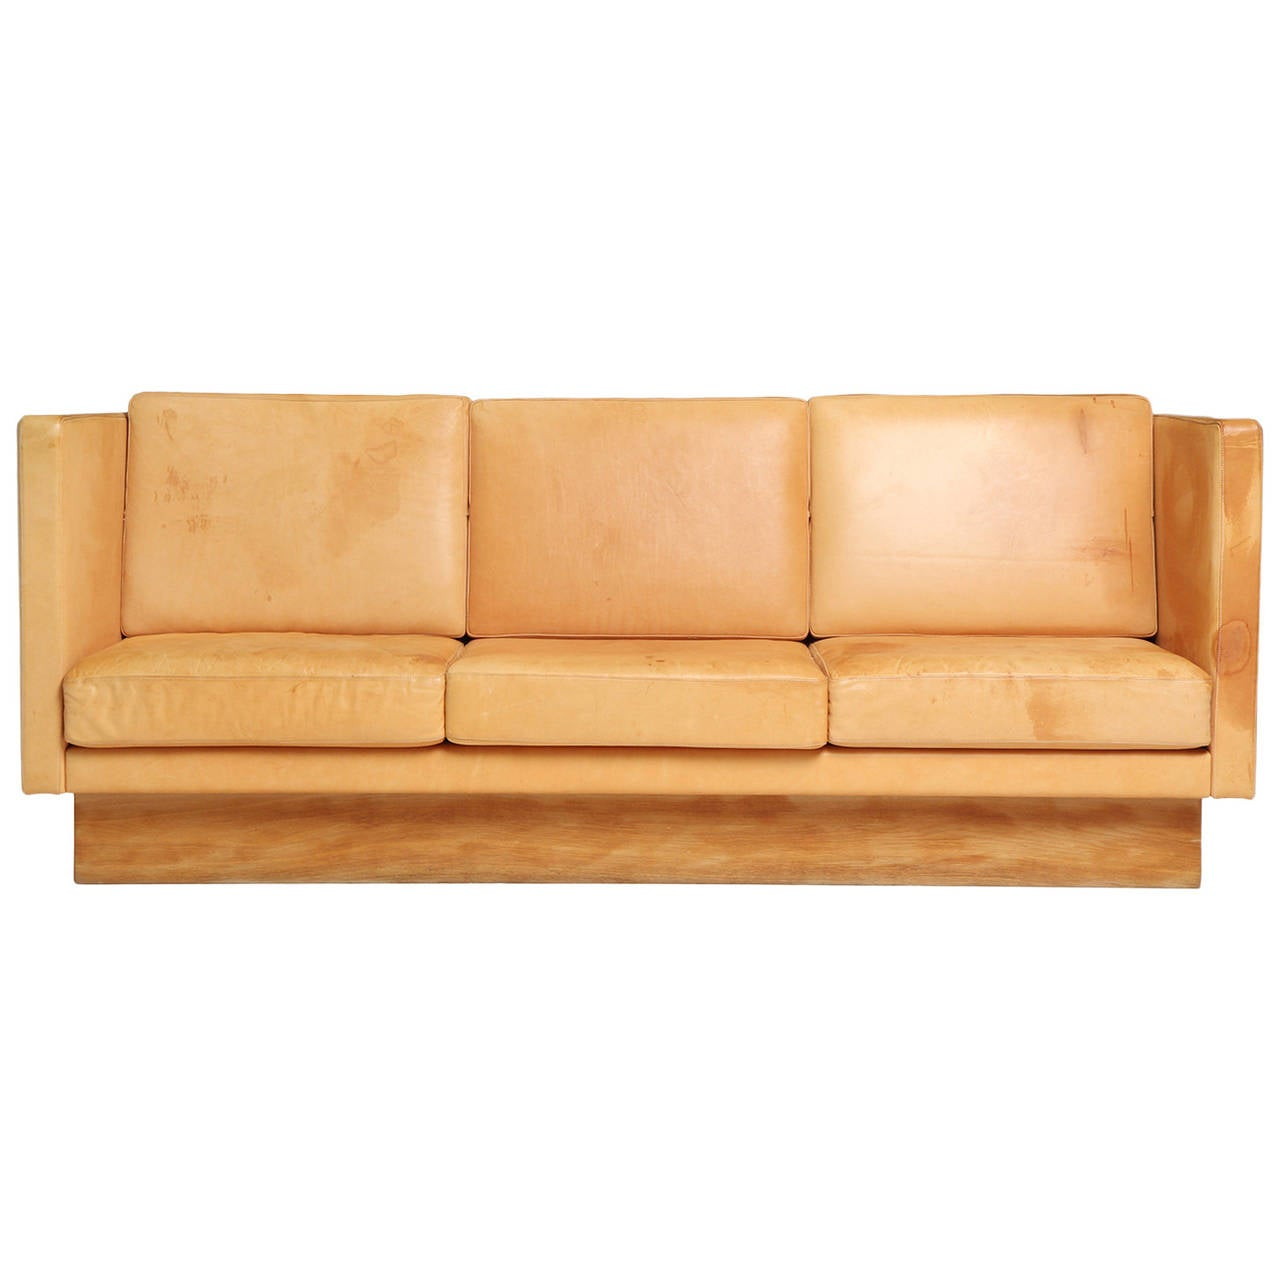 High Back White Leather Sofa: Natural Leather High Back Sofa At 1stdibs